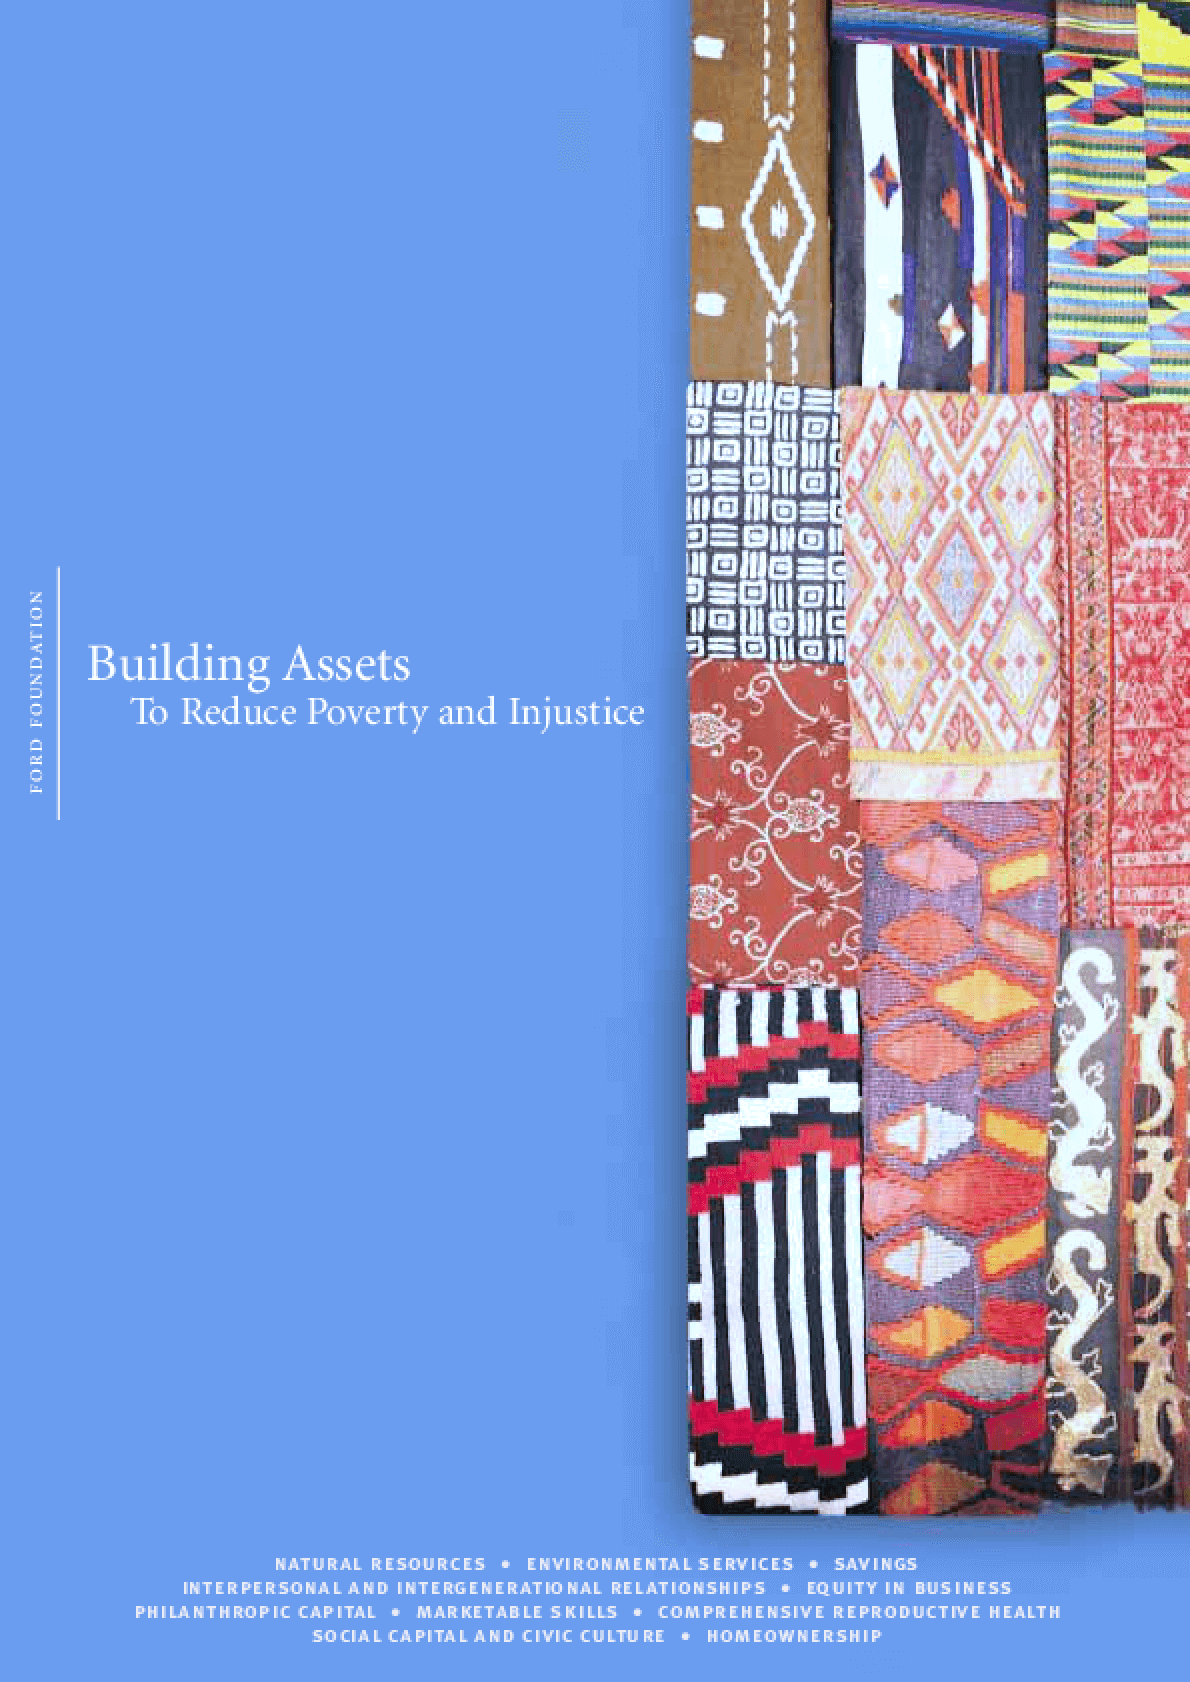 Building Assets to Reduce Poverty and Injustice